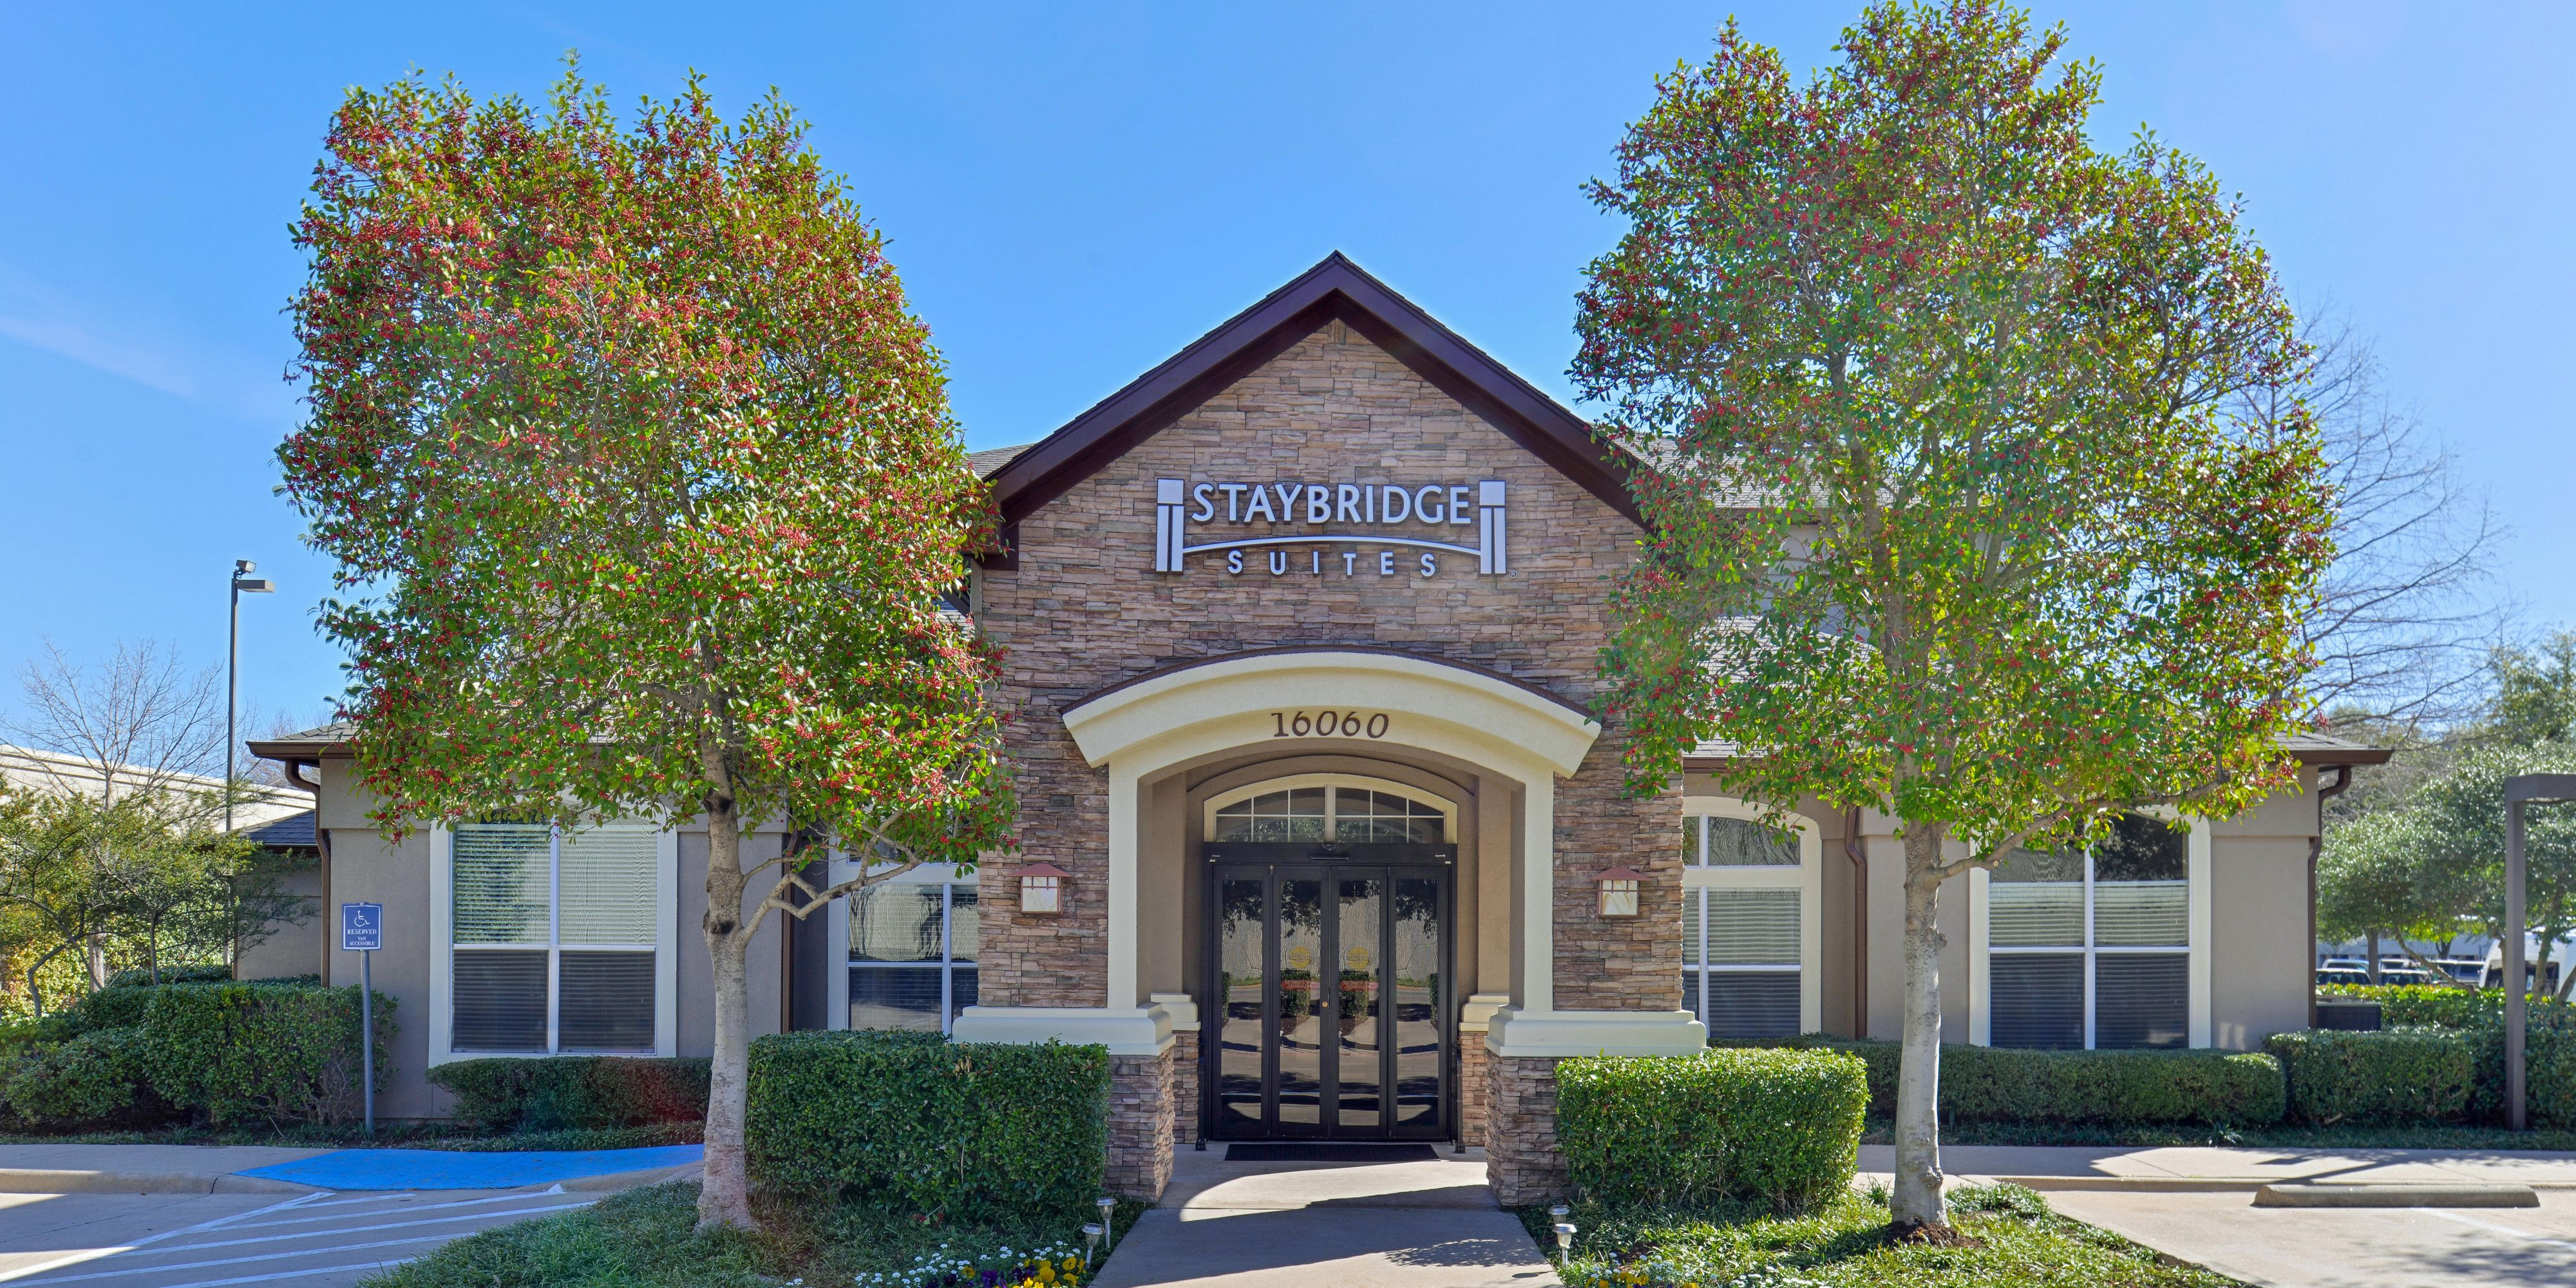 cheap extended stay hotels dallas tx newatvsfo